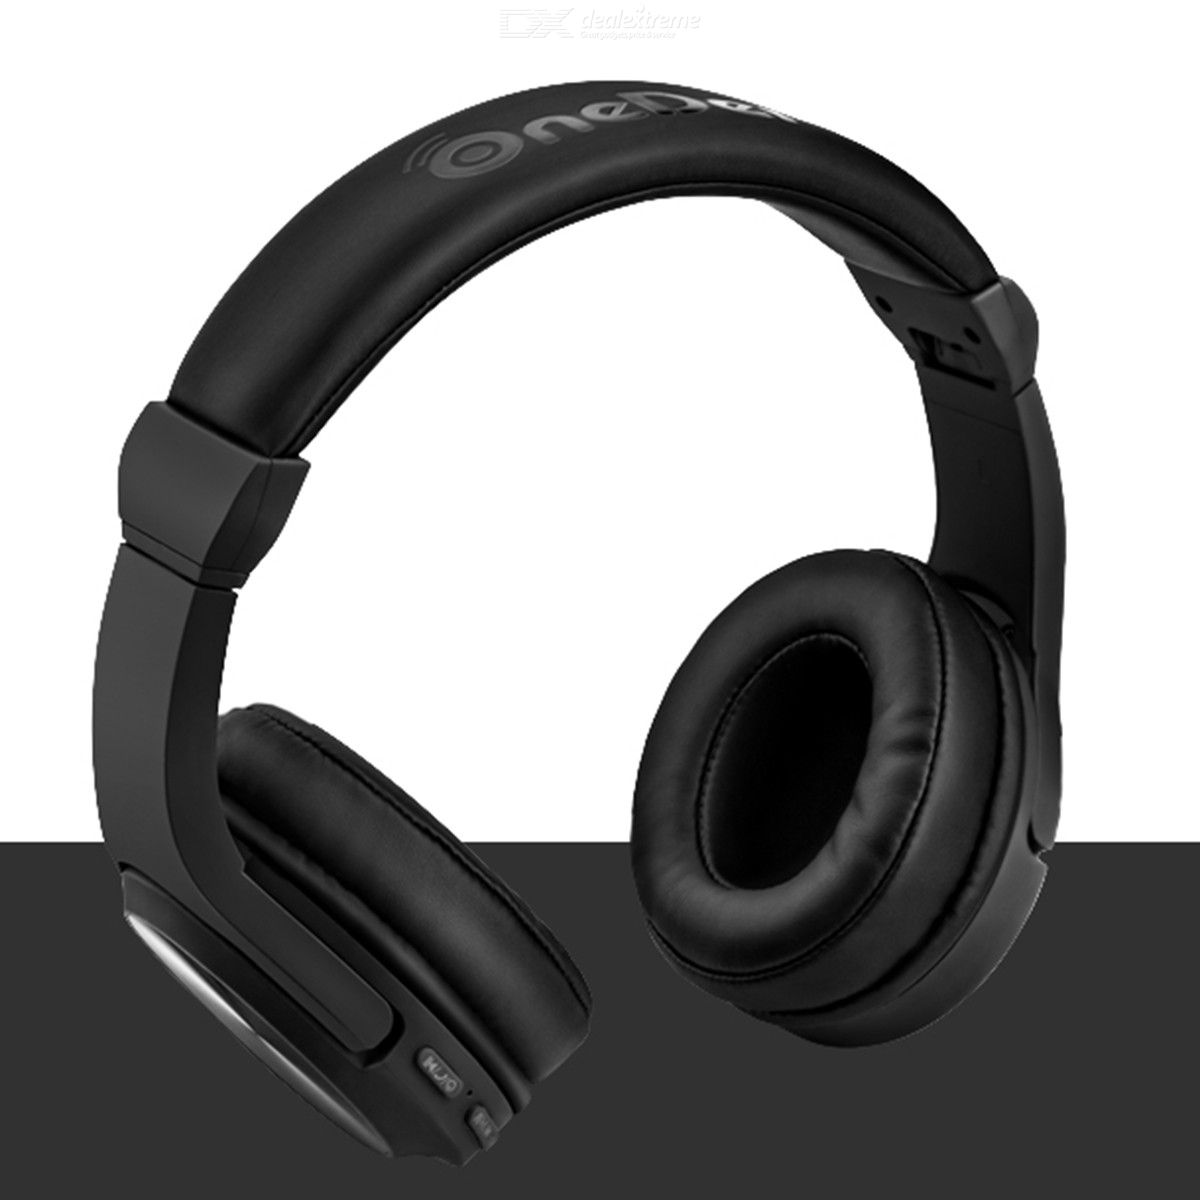 Oneder S1 Super Bass Headphones Wireless Bluetooth Headsets Noise Cancelling Earphones With Mic Support Tf Card Free Shipping Dealextreme